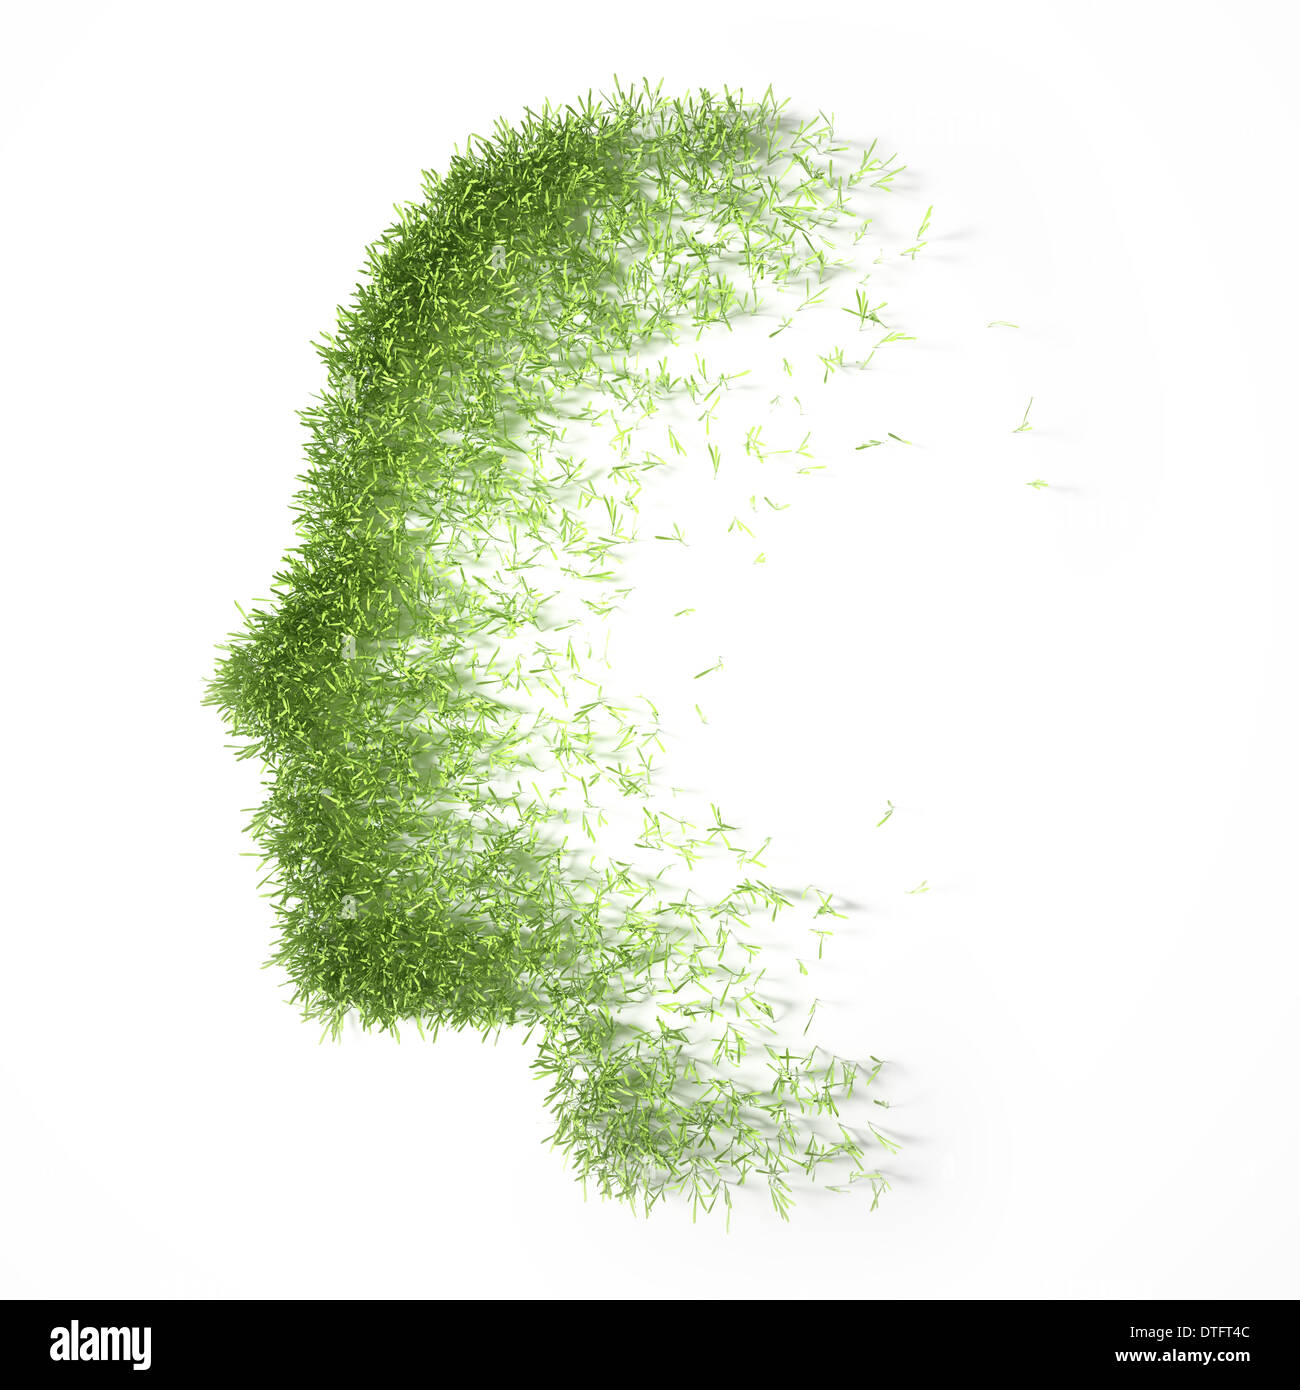 Grass patch shaped like a face Stock Photo